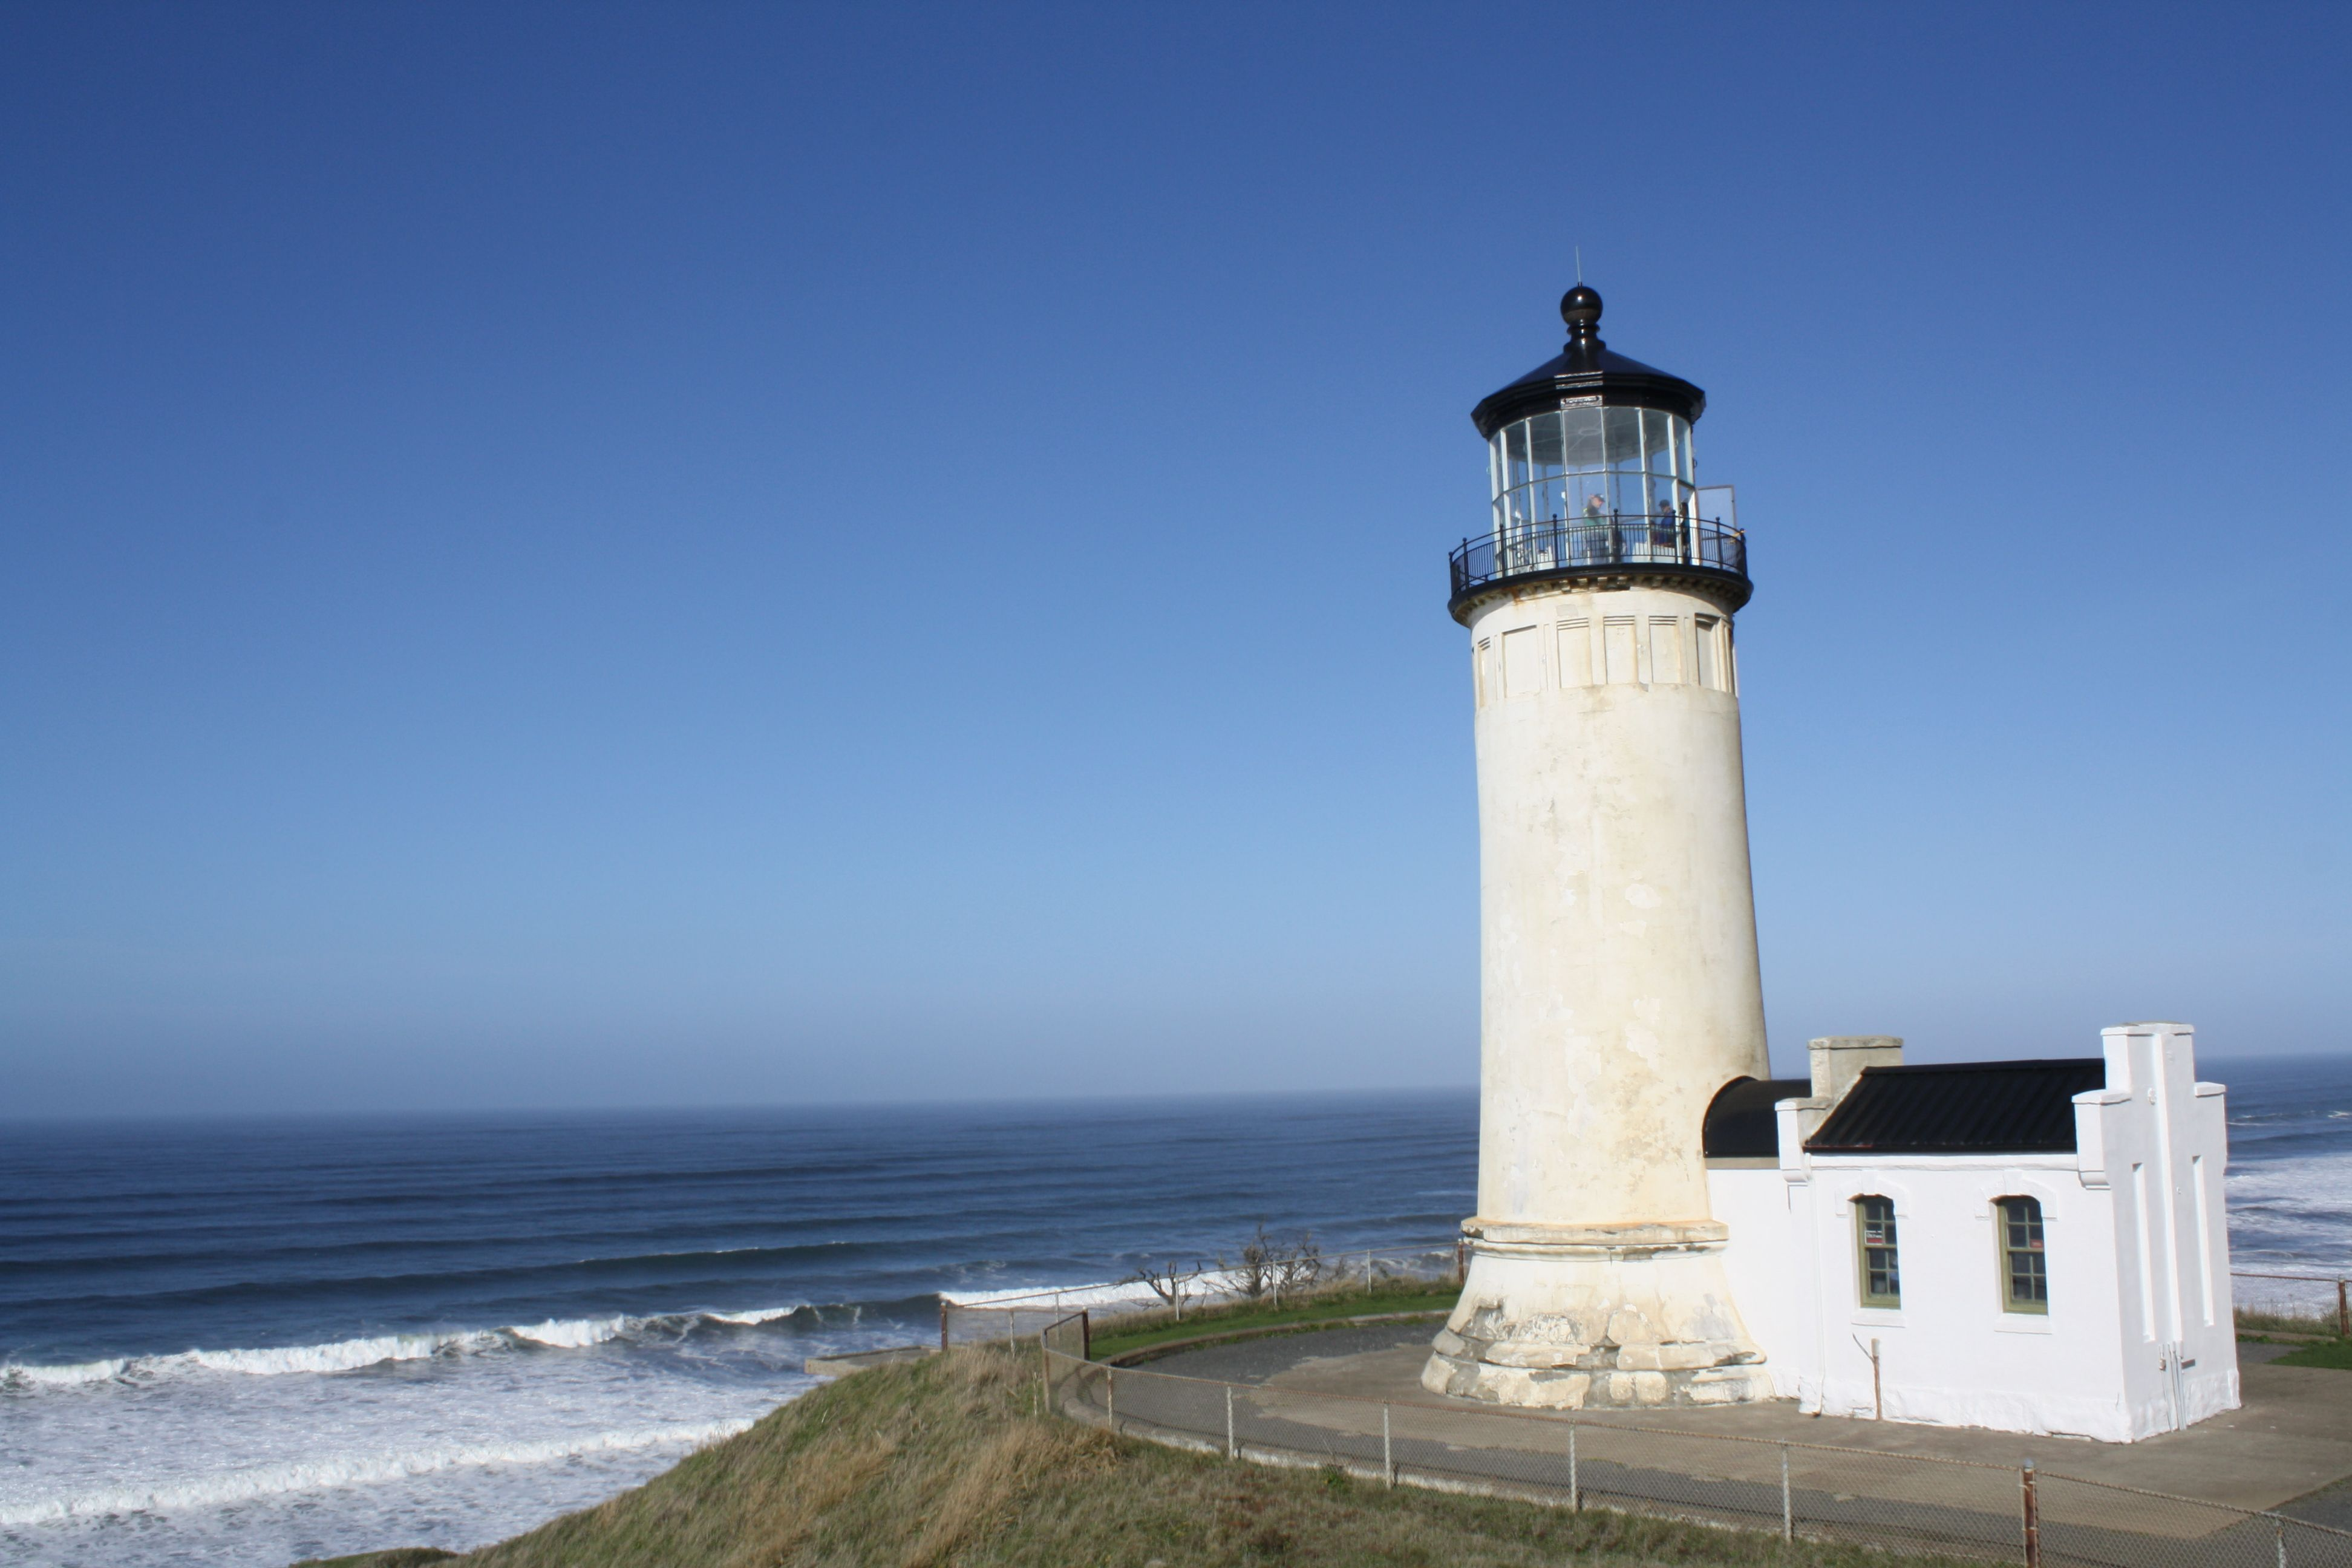 Lighthouse, Cape Disappointment State Park, WA State